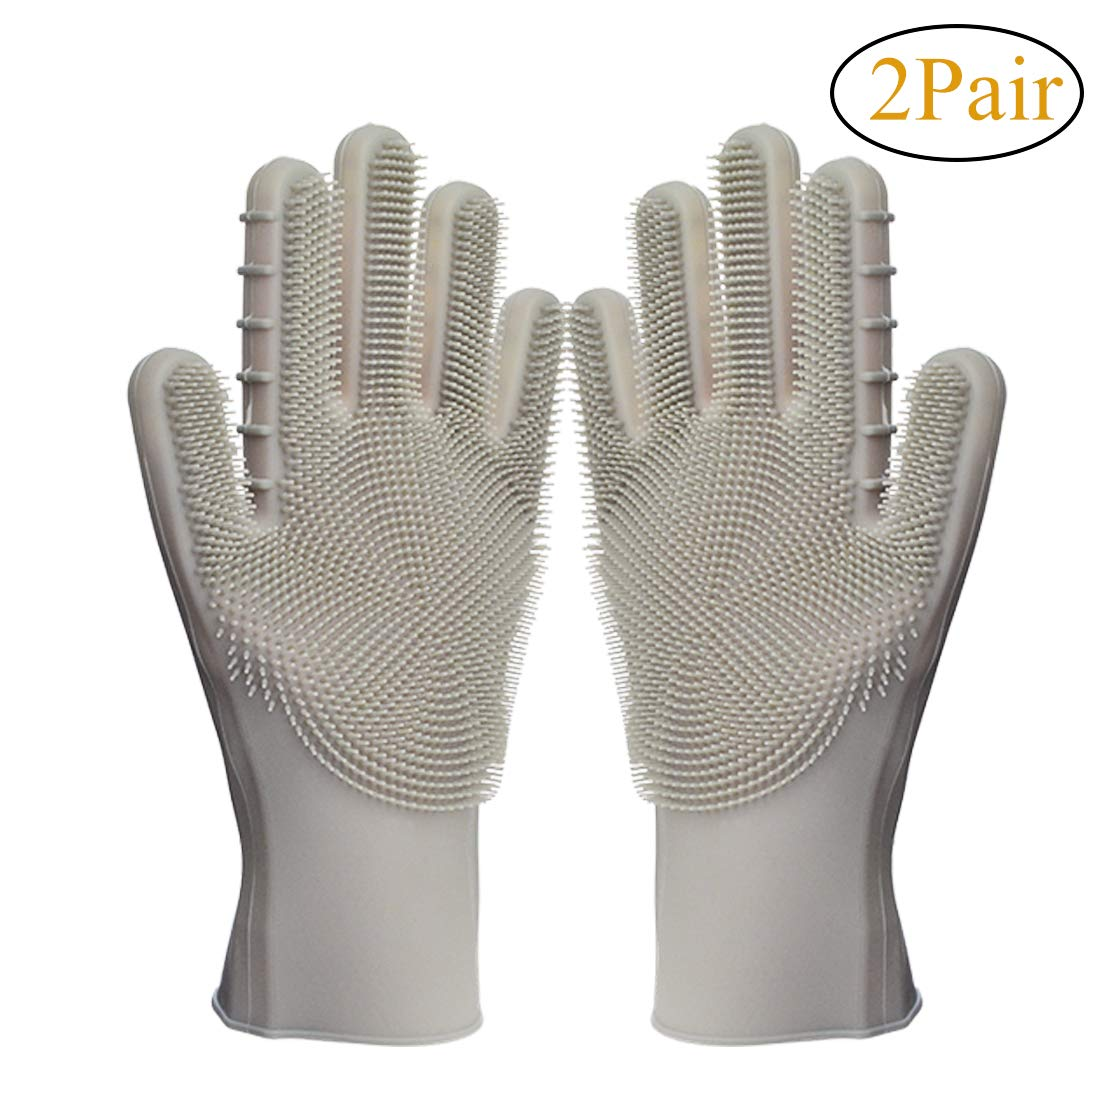 Poualass Dishwashing gloves 2 pair